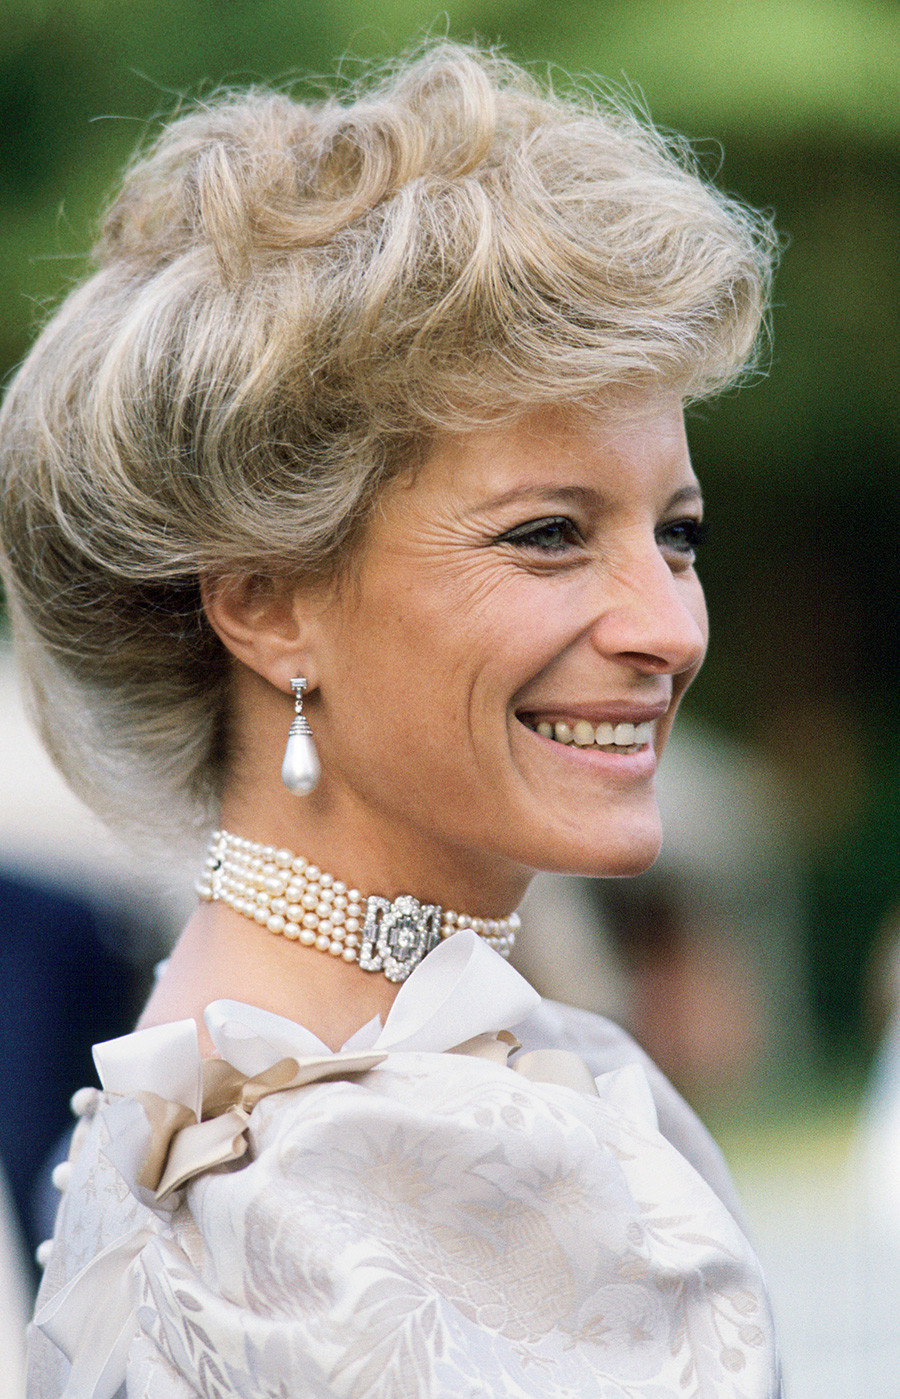 Princess Michael of Kent during a visit to Esher in Surrey.